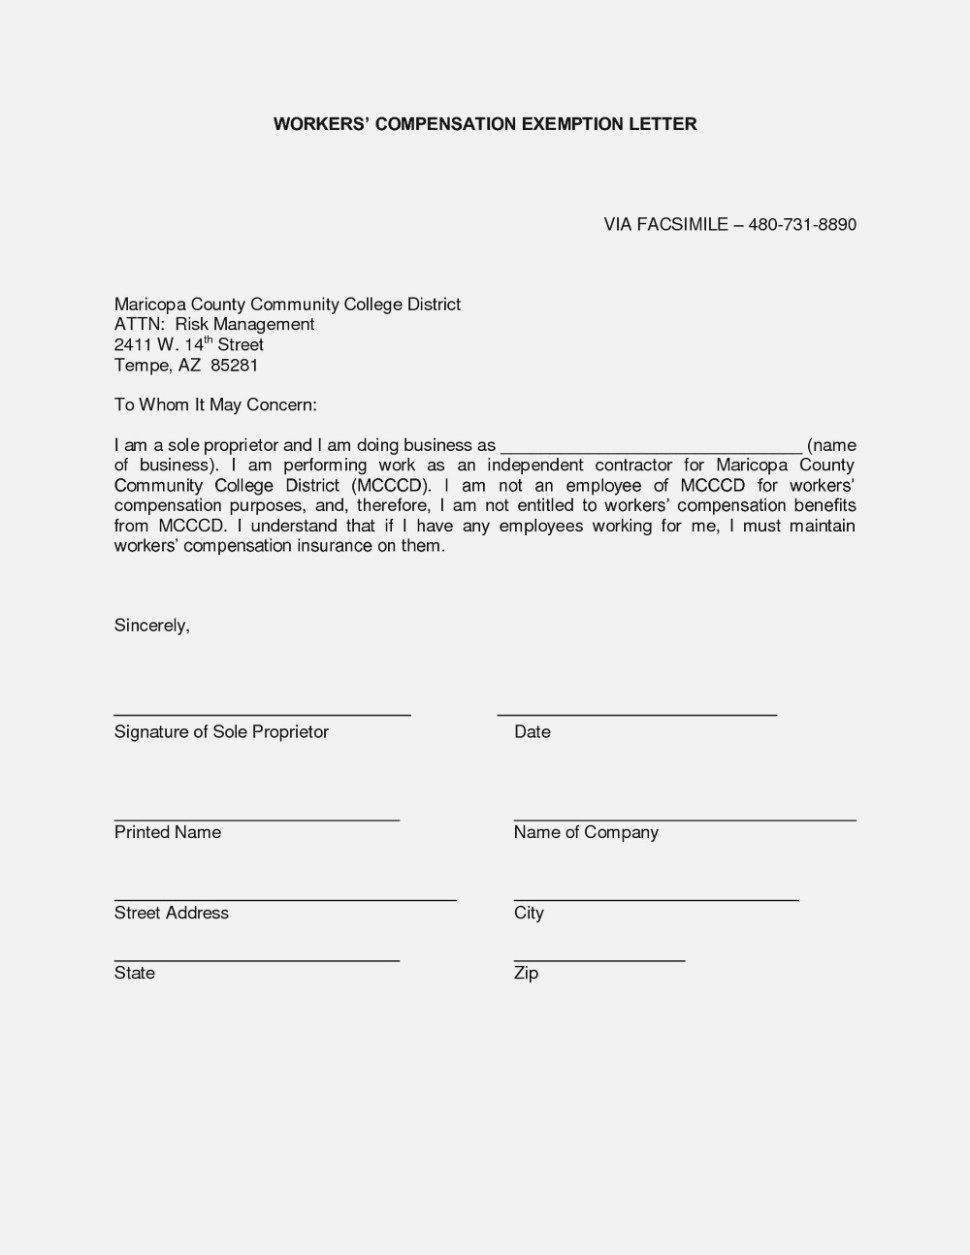 Workmans Comp Exclusion Form